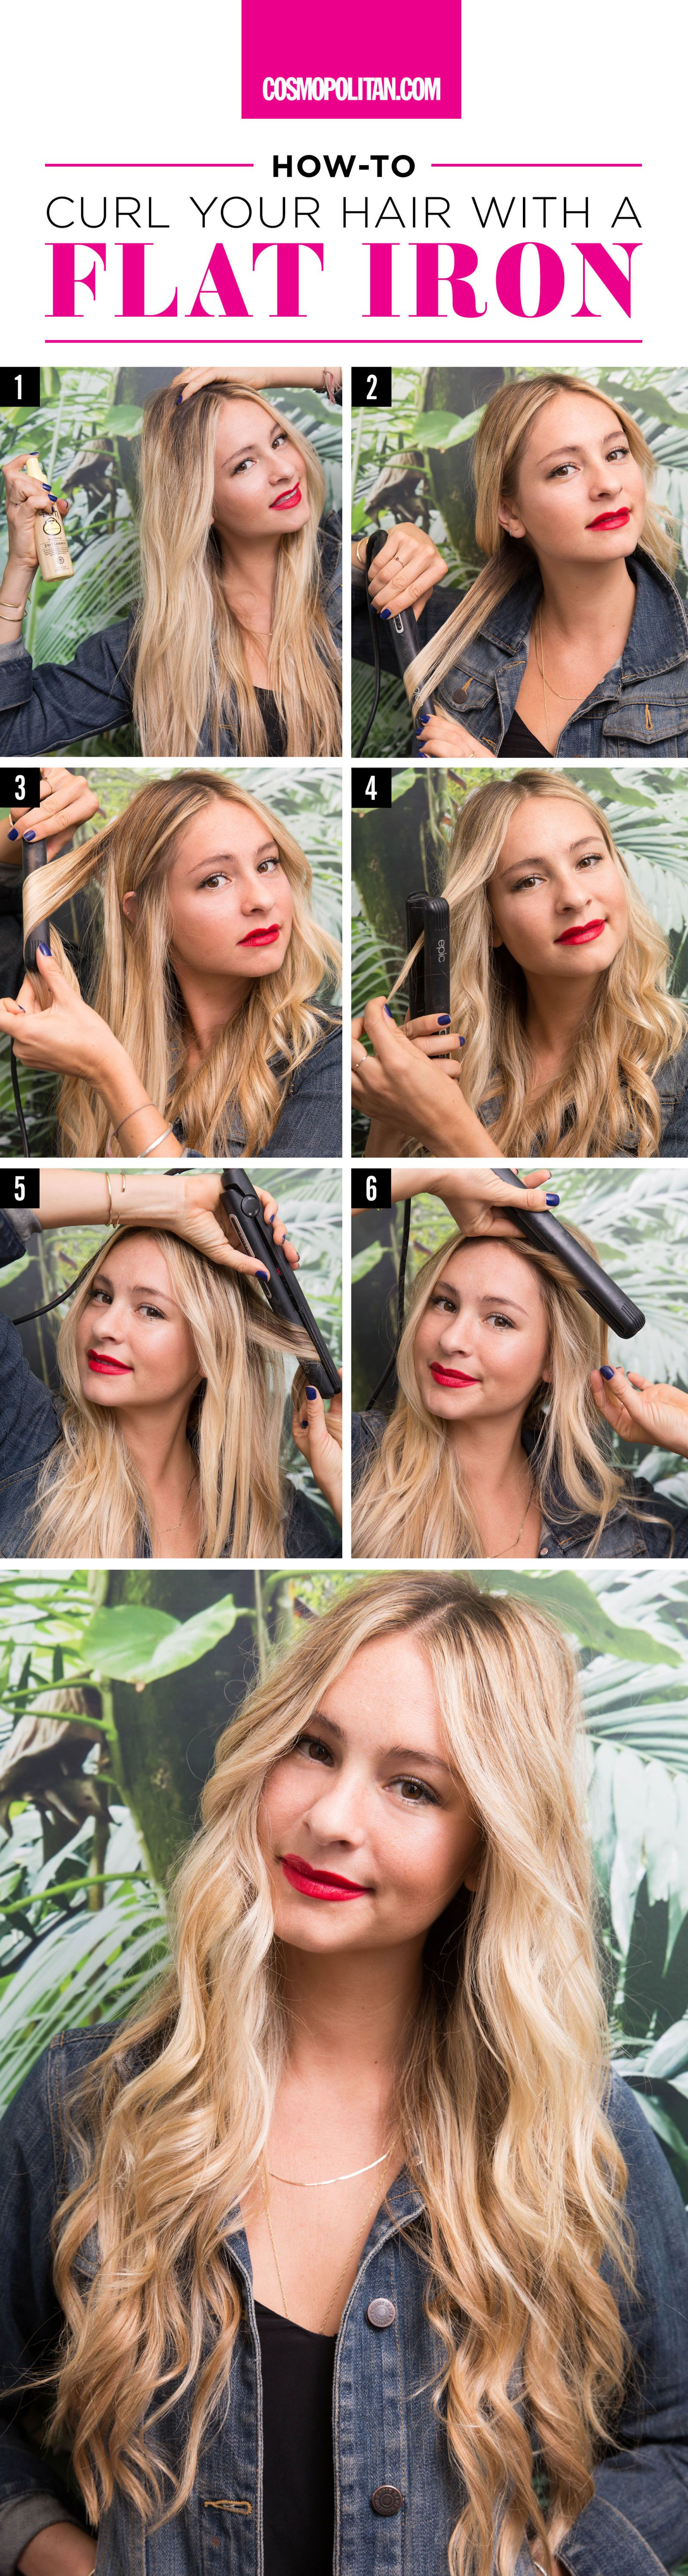 How to curl hair with a straightener by yourself